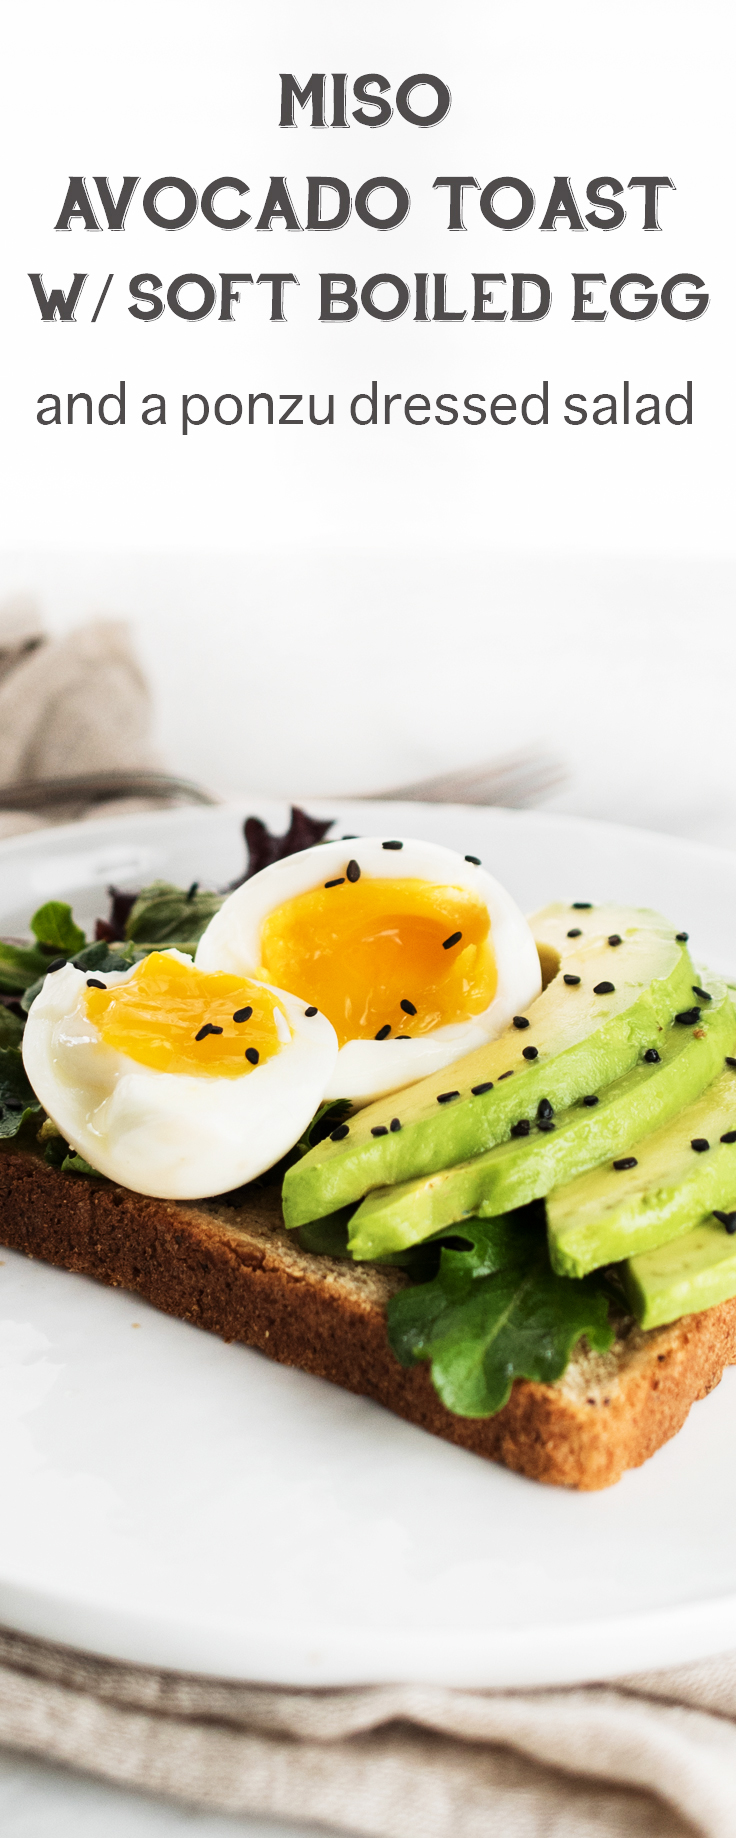 Got 10 minutes?! Miso Avocado Toast with Soft Boil Egg is the perfect quick and easy breakfast!